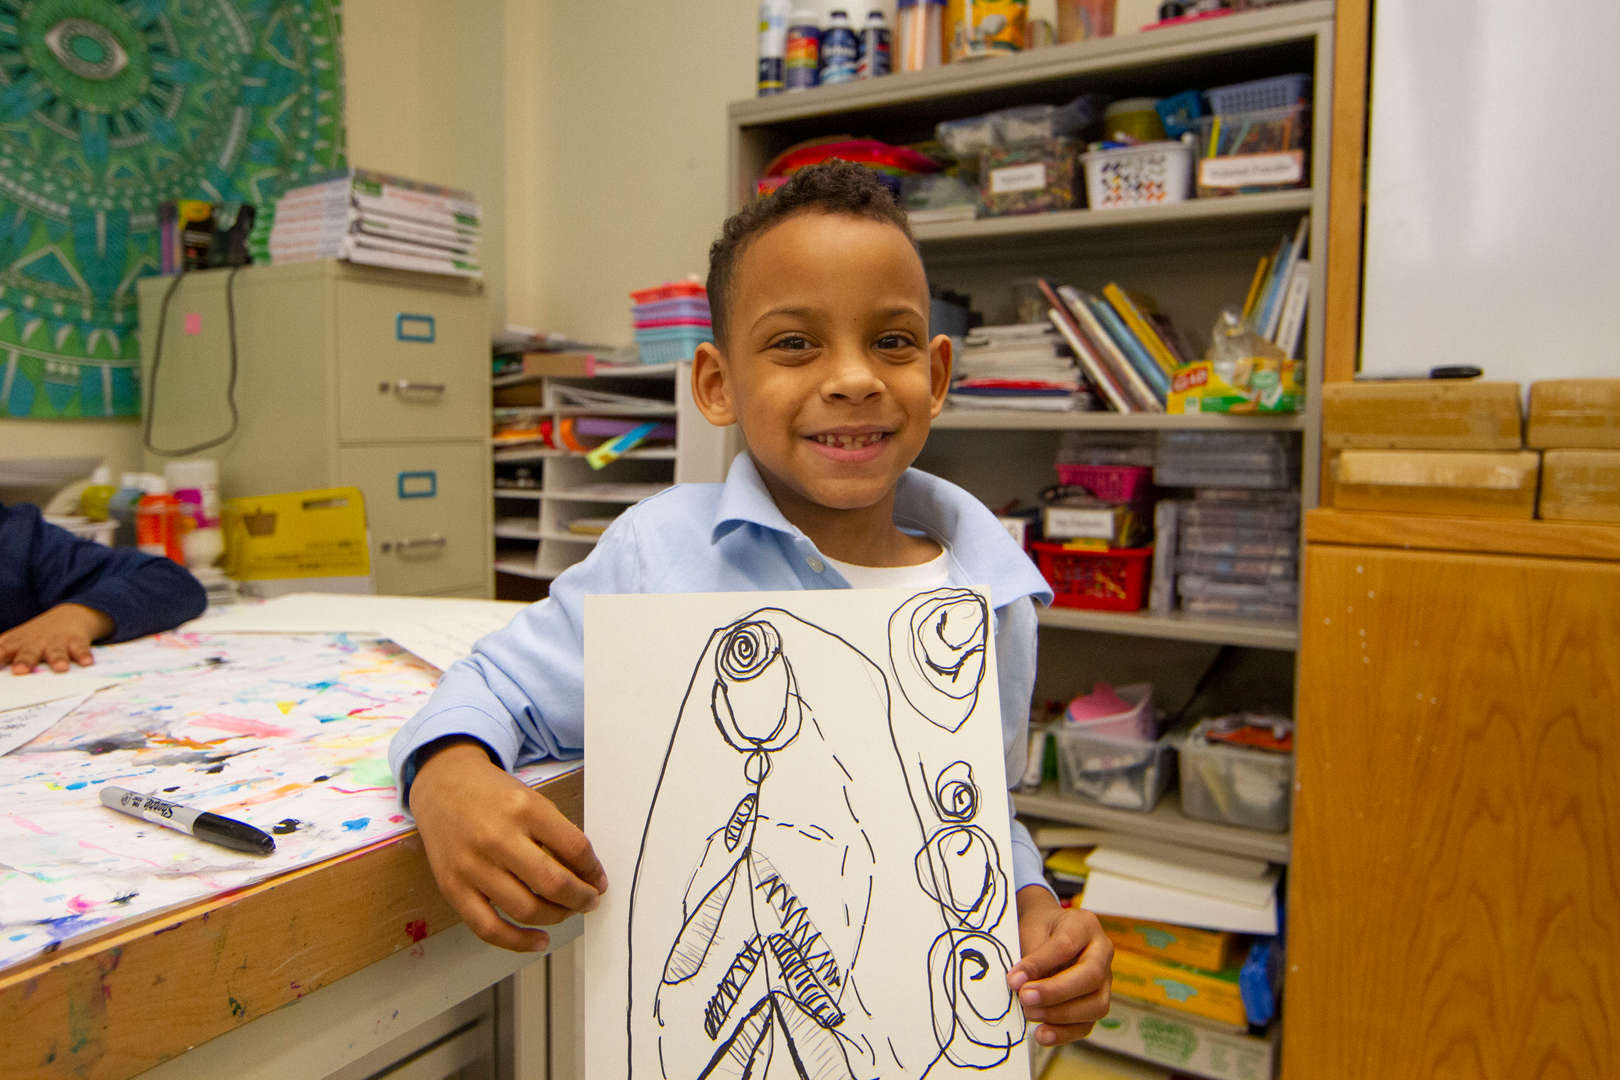 Child holding up drawing